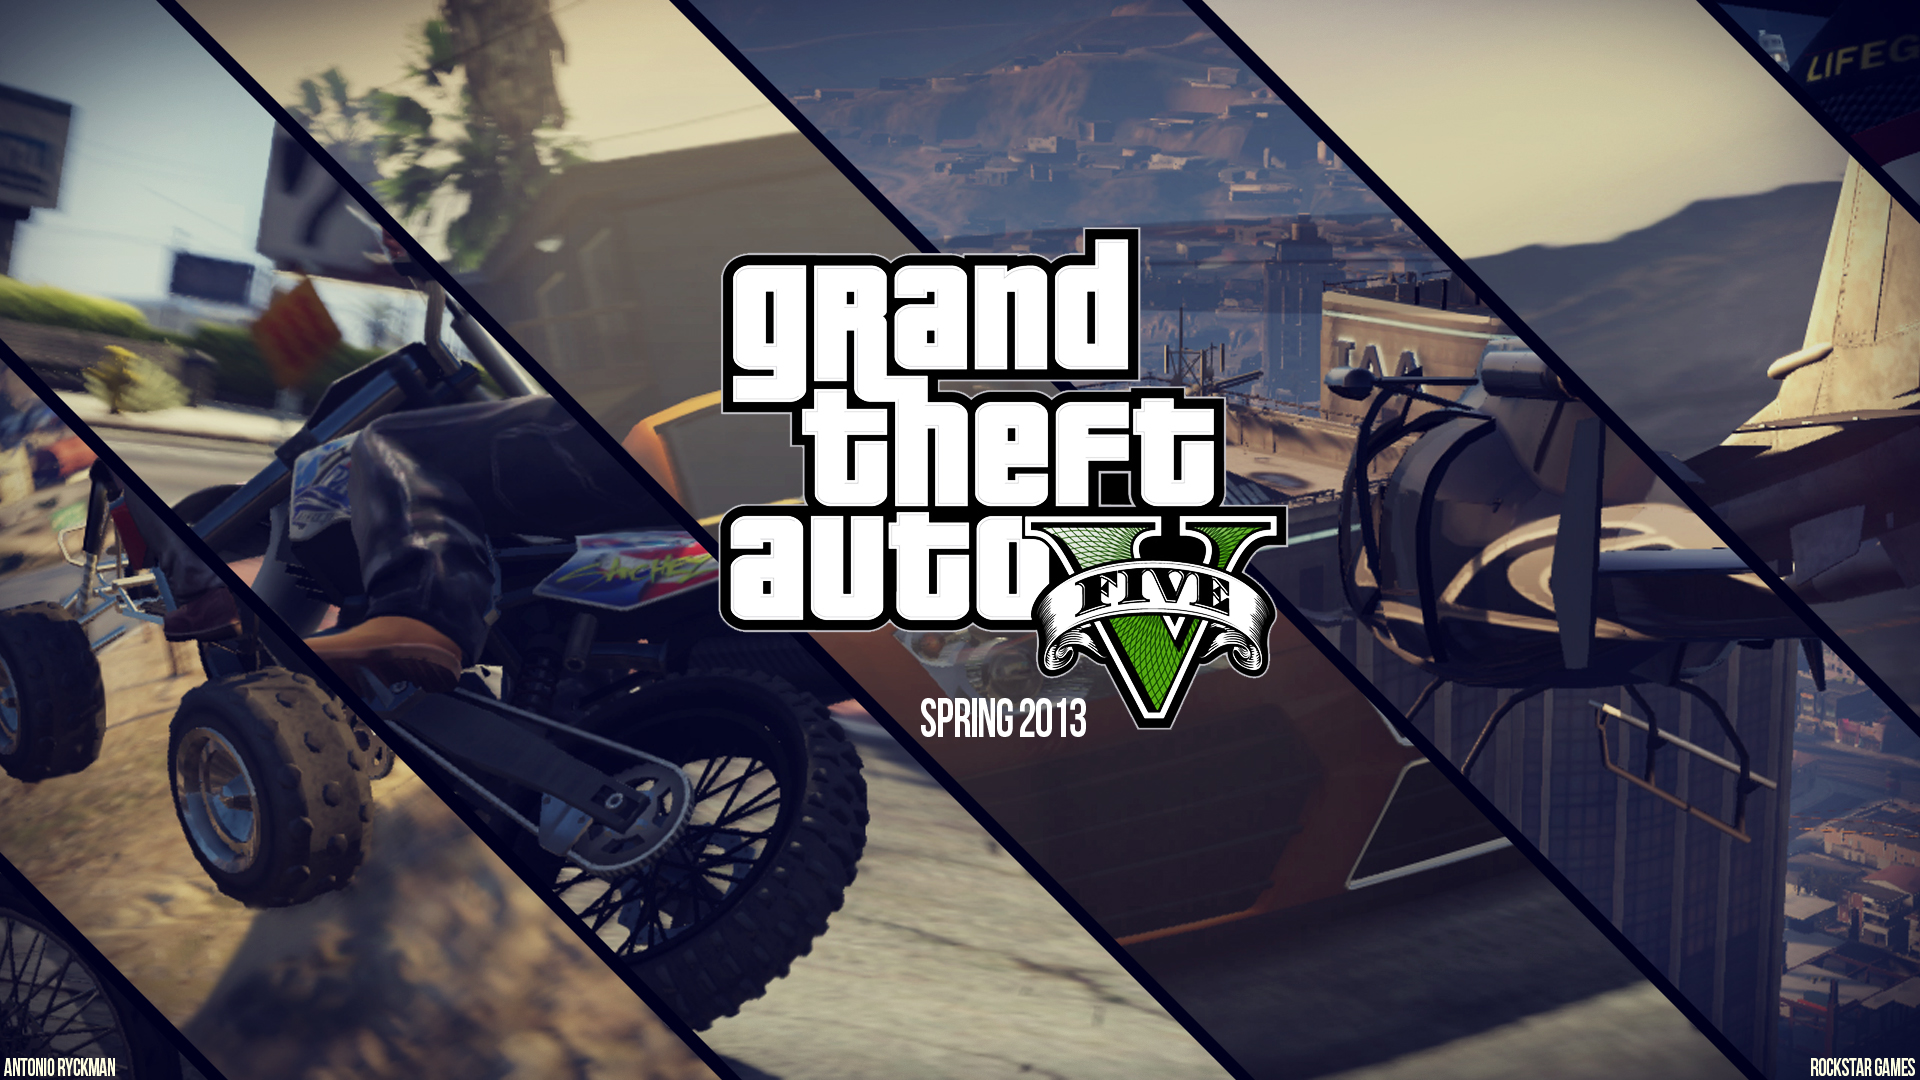 Grand Theft Auto V Release Date  Screens and Trailer   TechViral HD Wallpaper